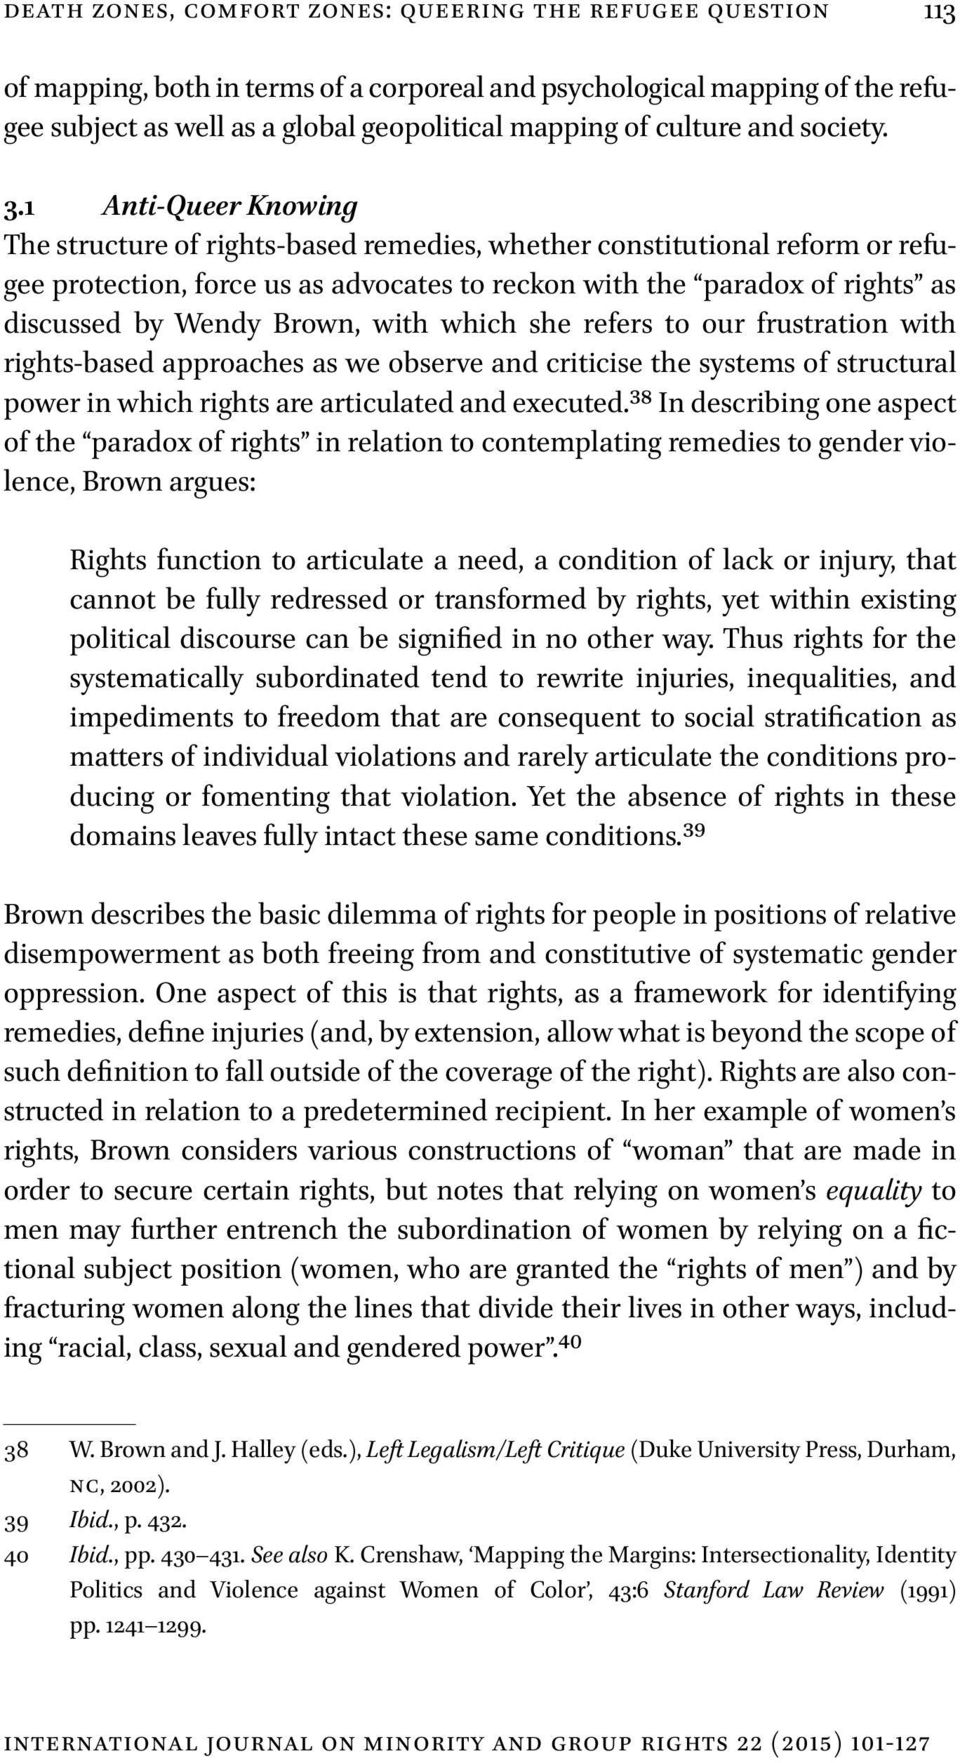 1 Anti-Queer Knowing The structure of rights-based remedies, whether constitutional reform or refugee protection, force us as advocates to reckon with the paradox of rights as discussed by Wendy